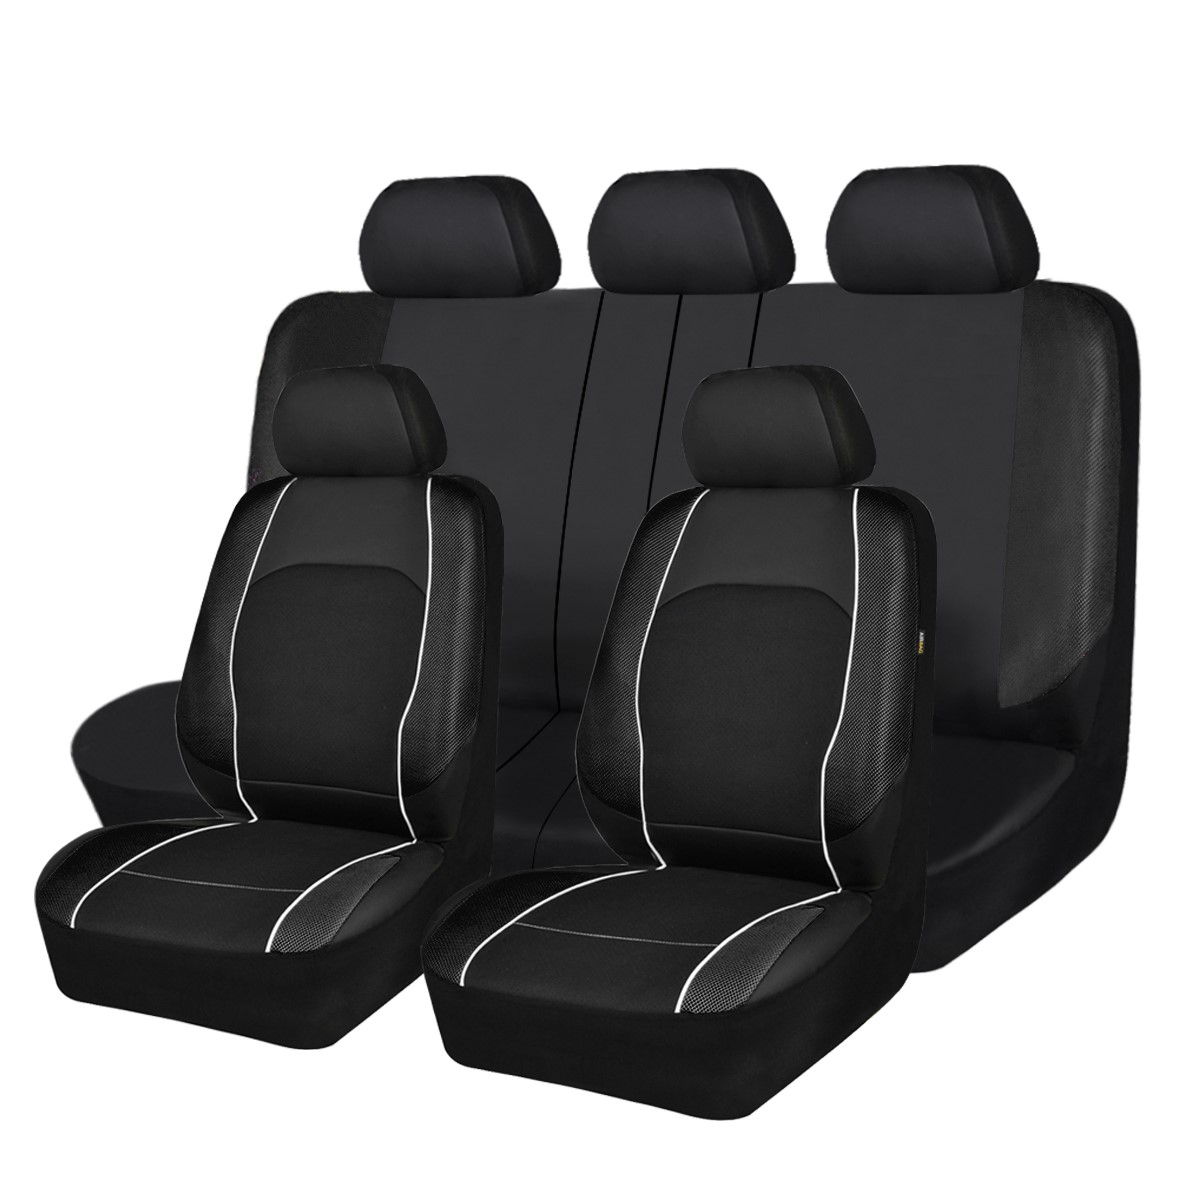 Full Leather Seat Covers Set Gray Black For Auto Car SUV Van Universal w// Gift